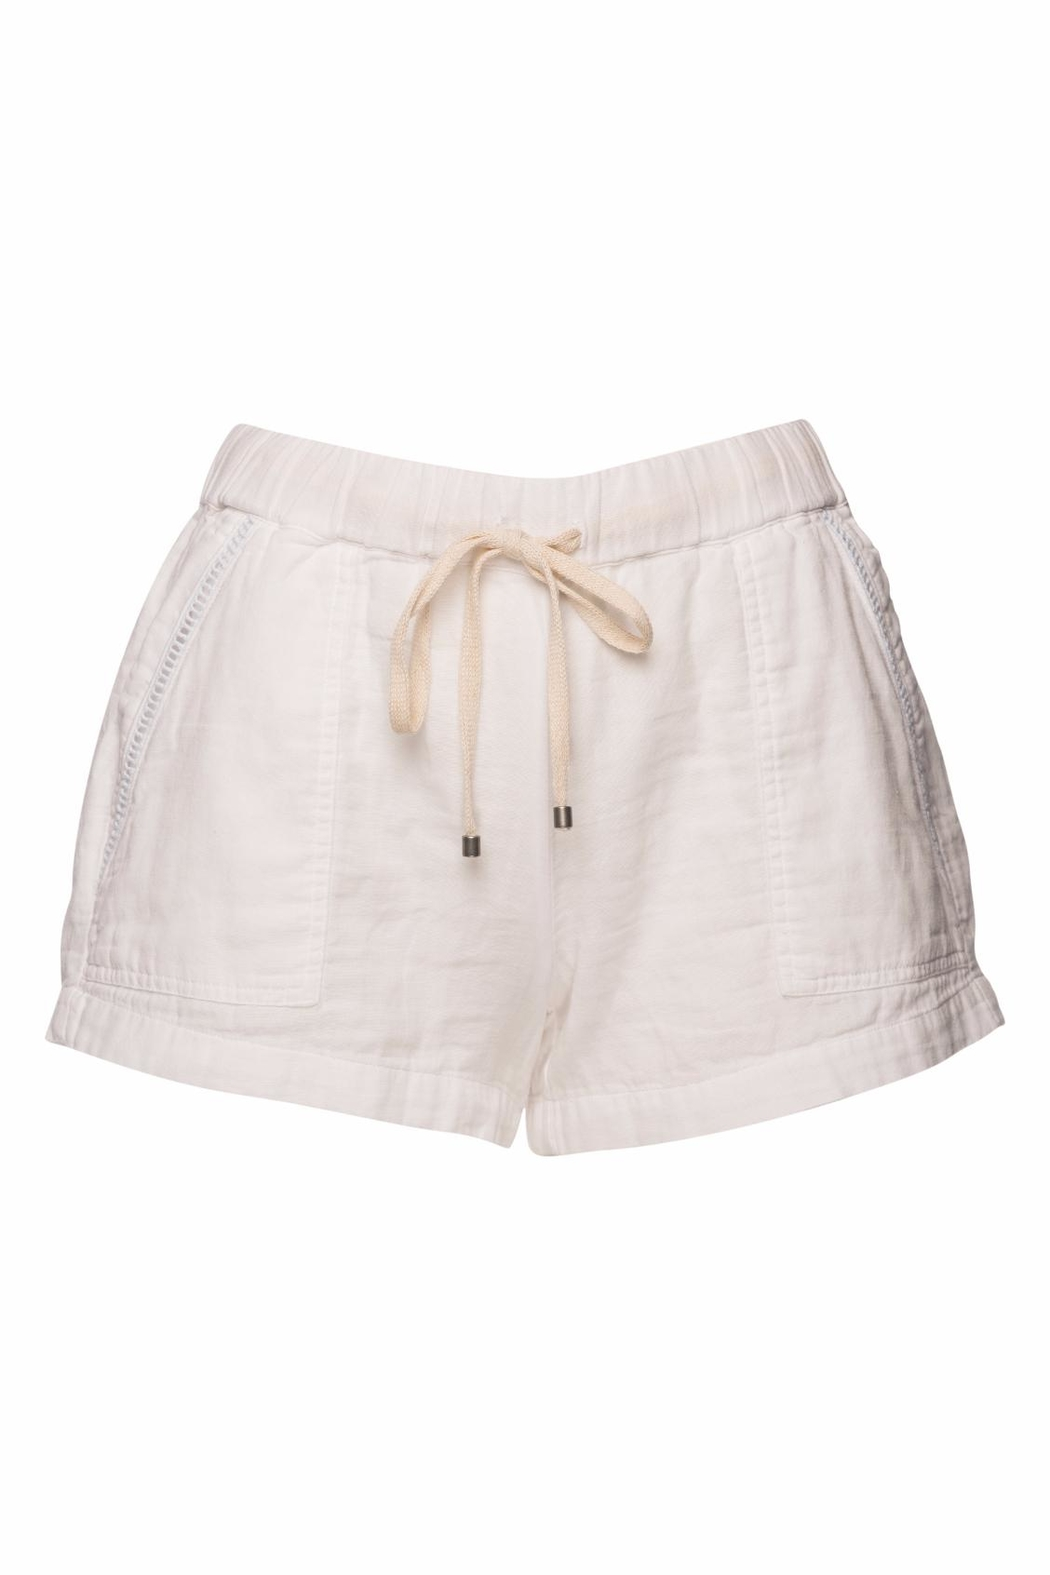 Splendid Double Cloth Shorts - Front Cropped Image